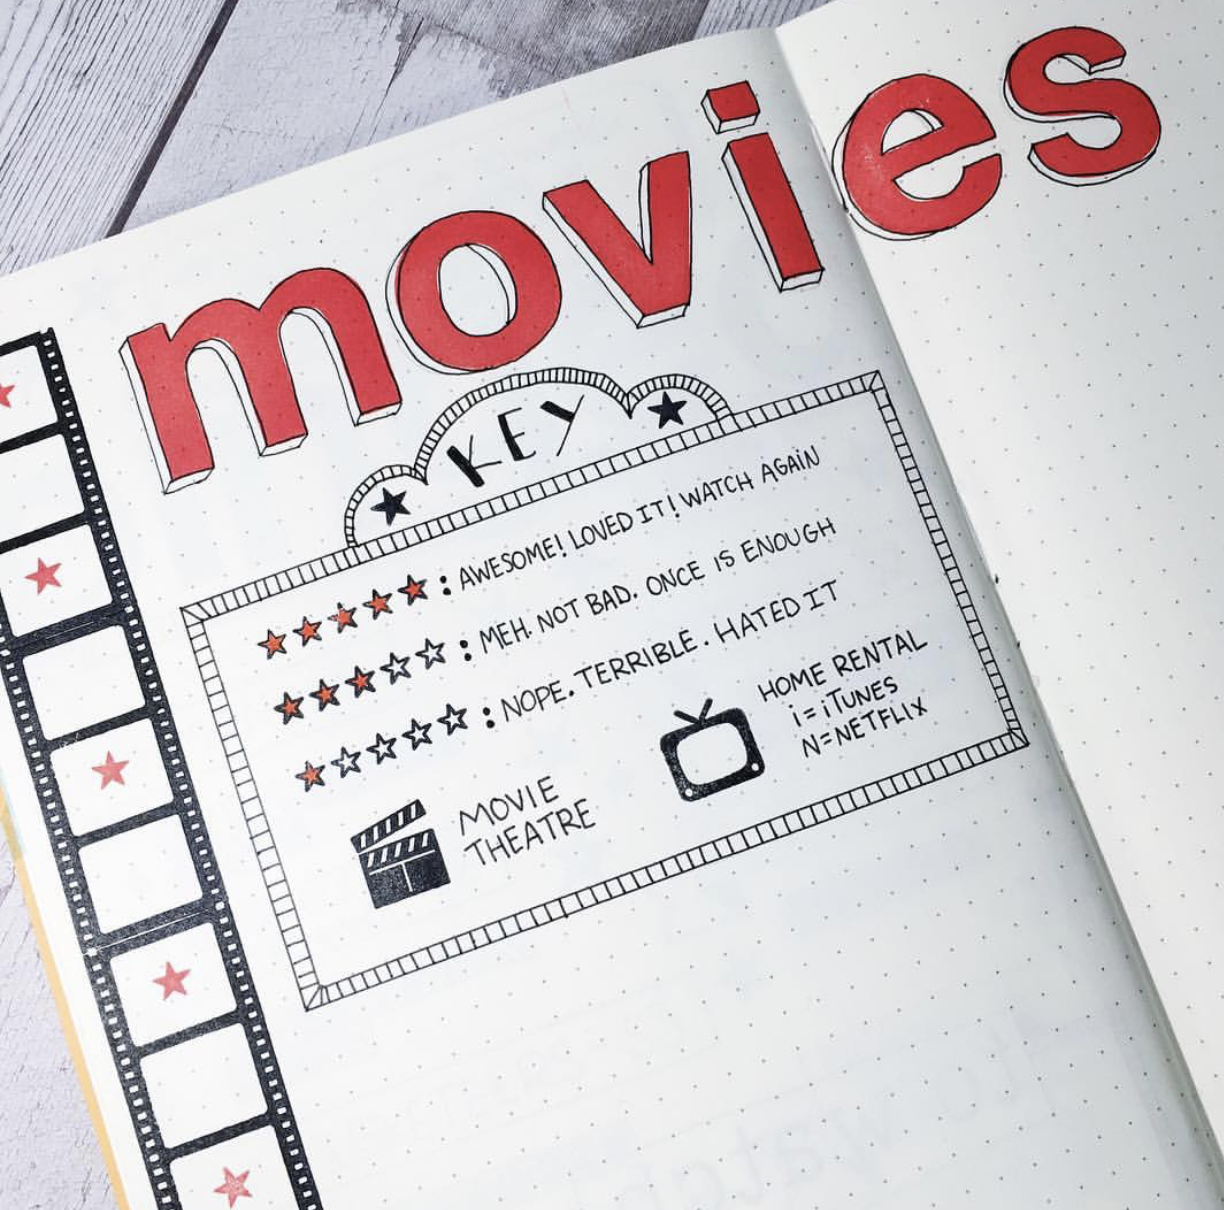 Tv Movie Bullet Journal Spread Inspiration Gallery Templates